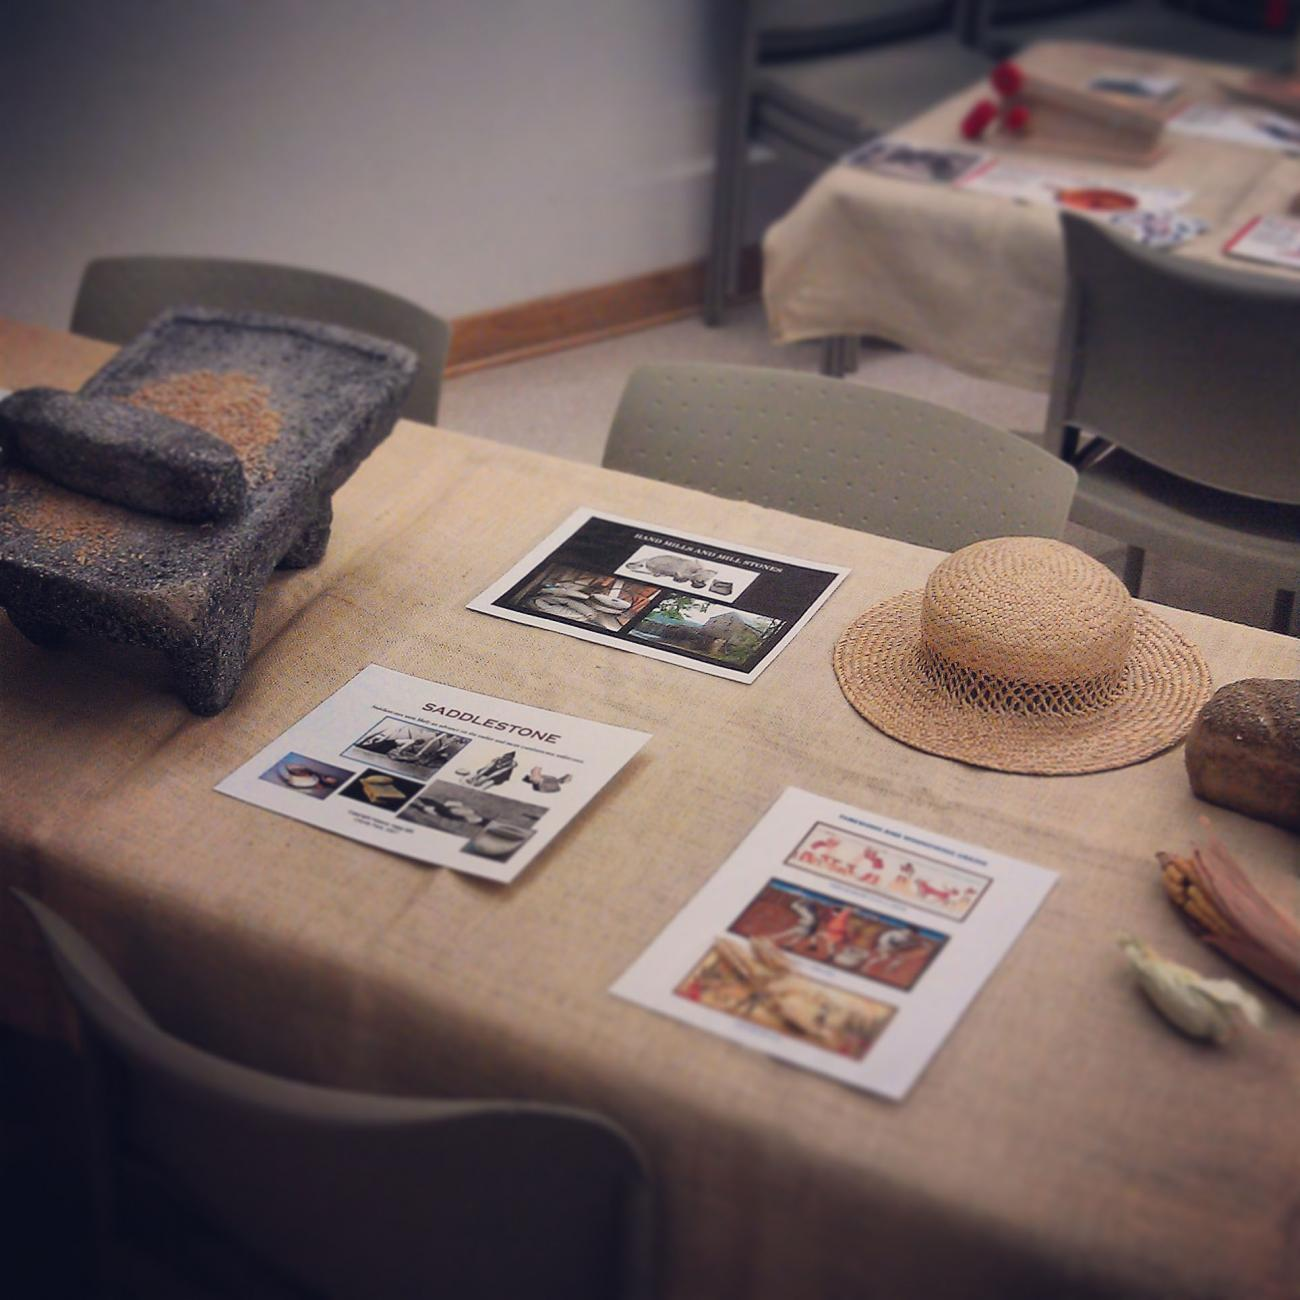 image of mortar and pestle, grain, and hat on table